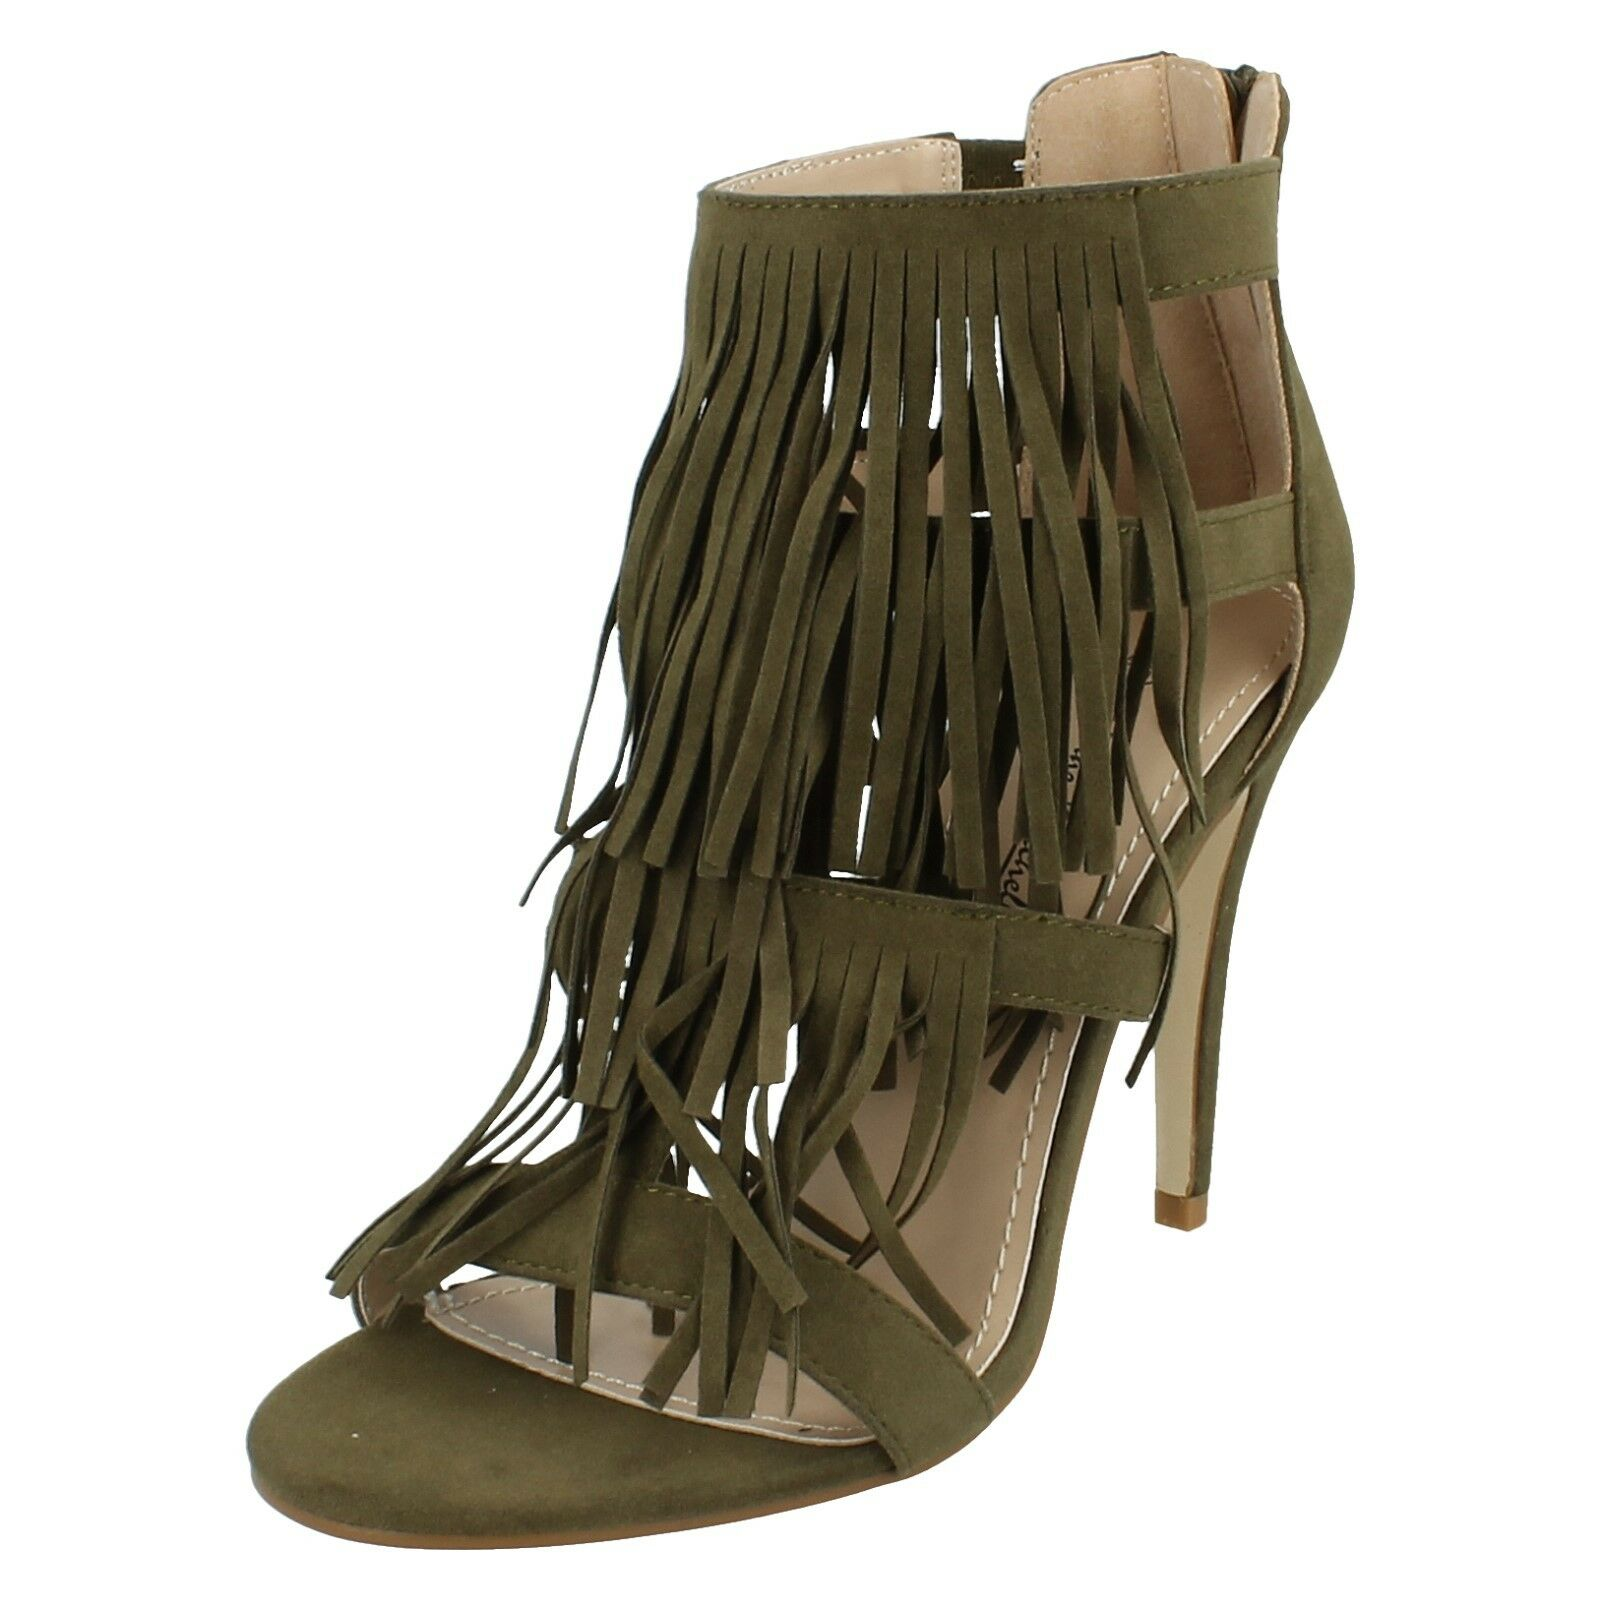 LADIES ANNE MICHELLE HIGH HEEL EVENING ZIP UP OPEN TOE EVENING HEEL SANDALS F10531 1c4984